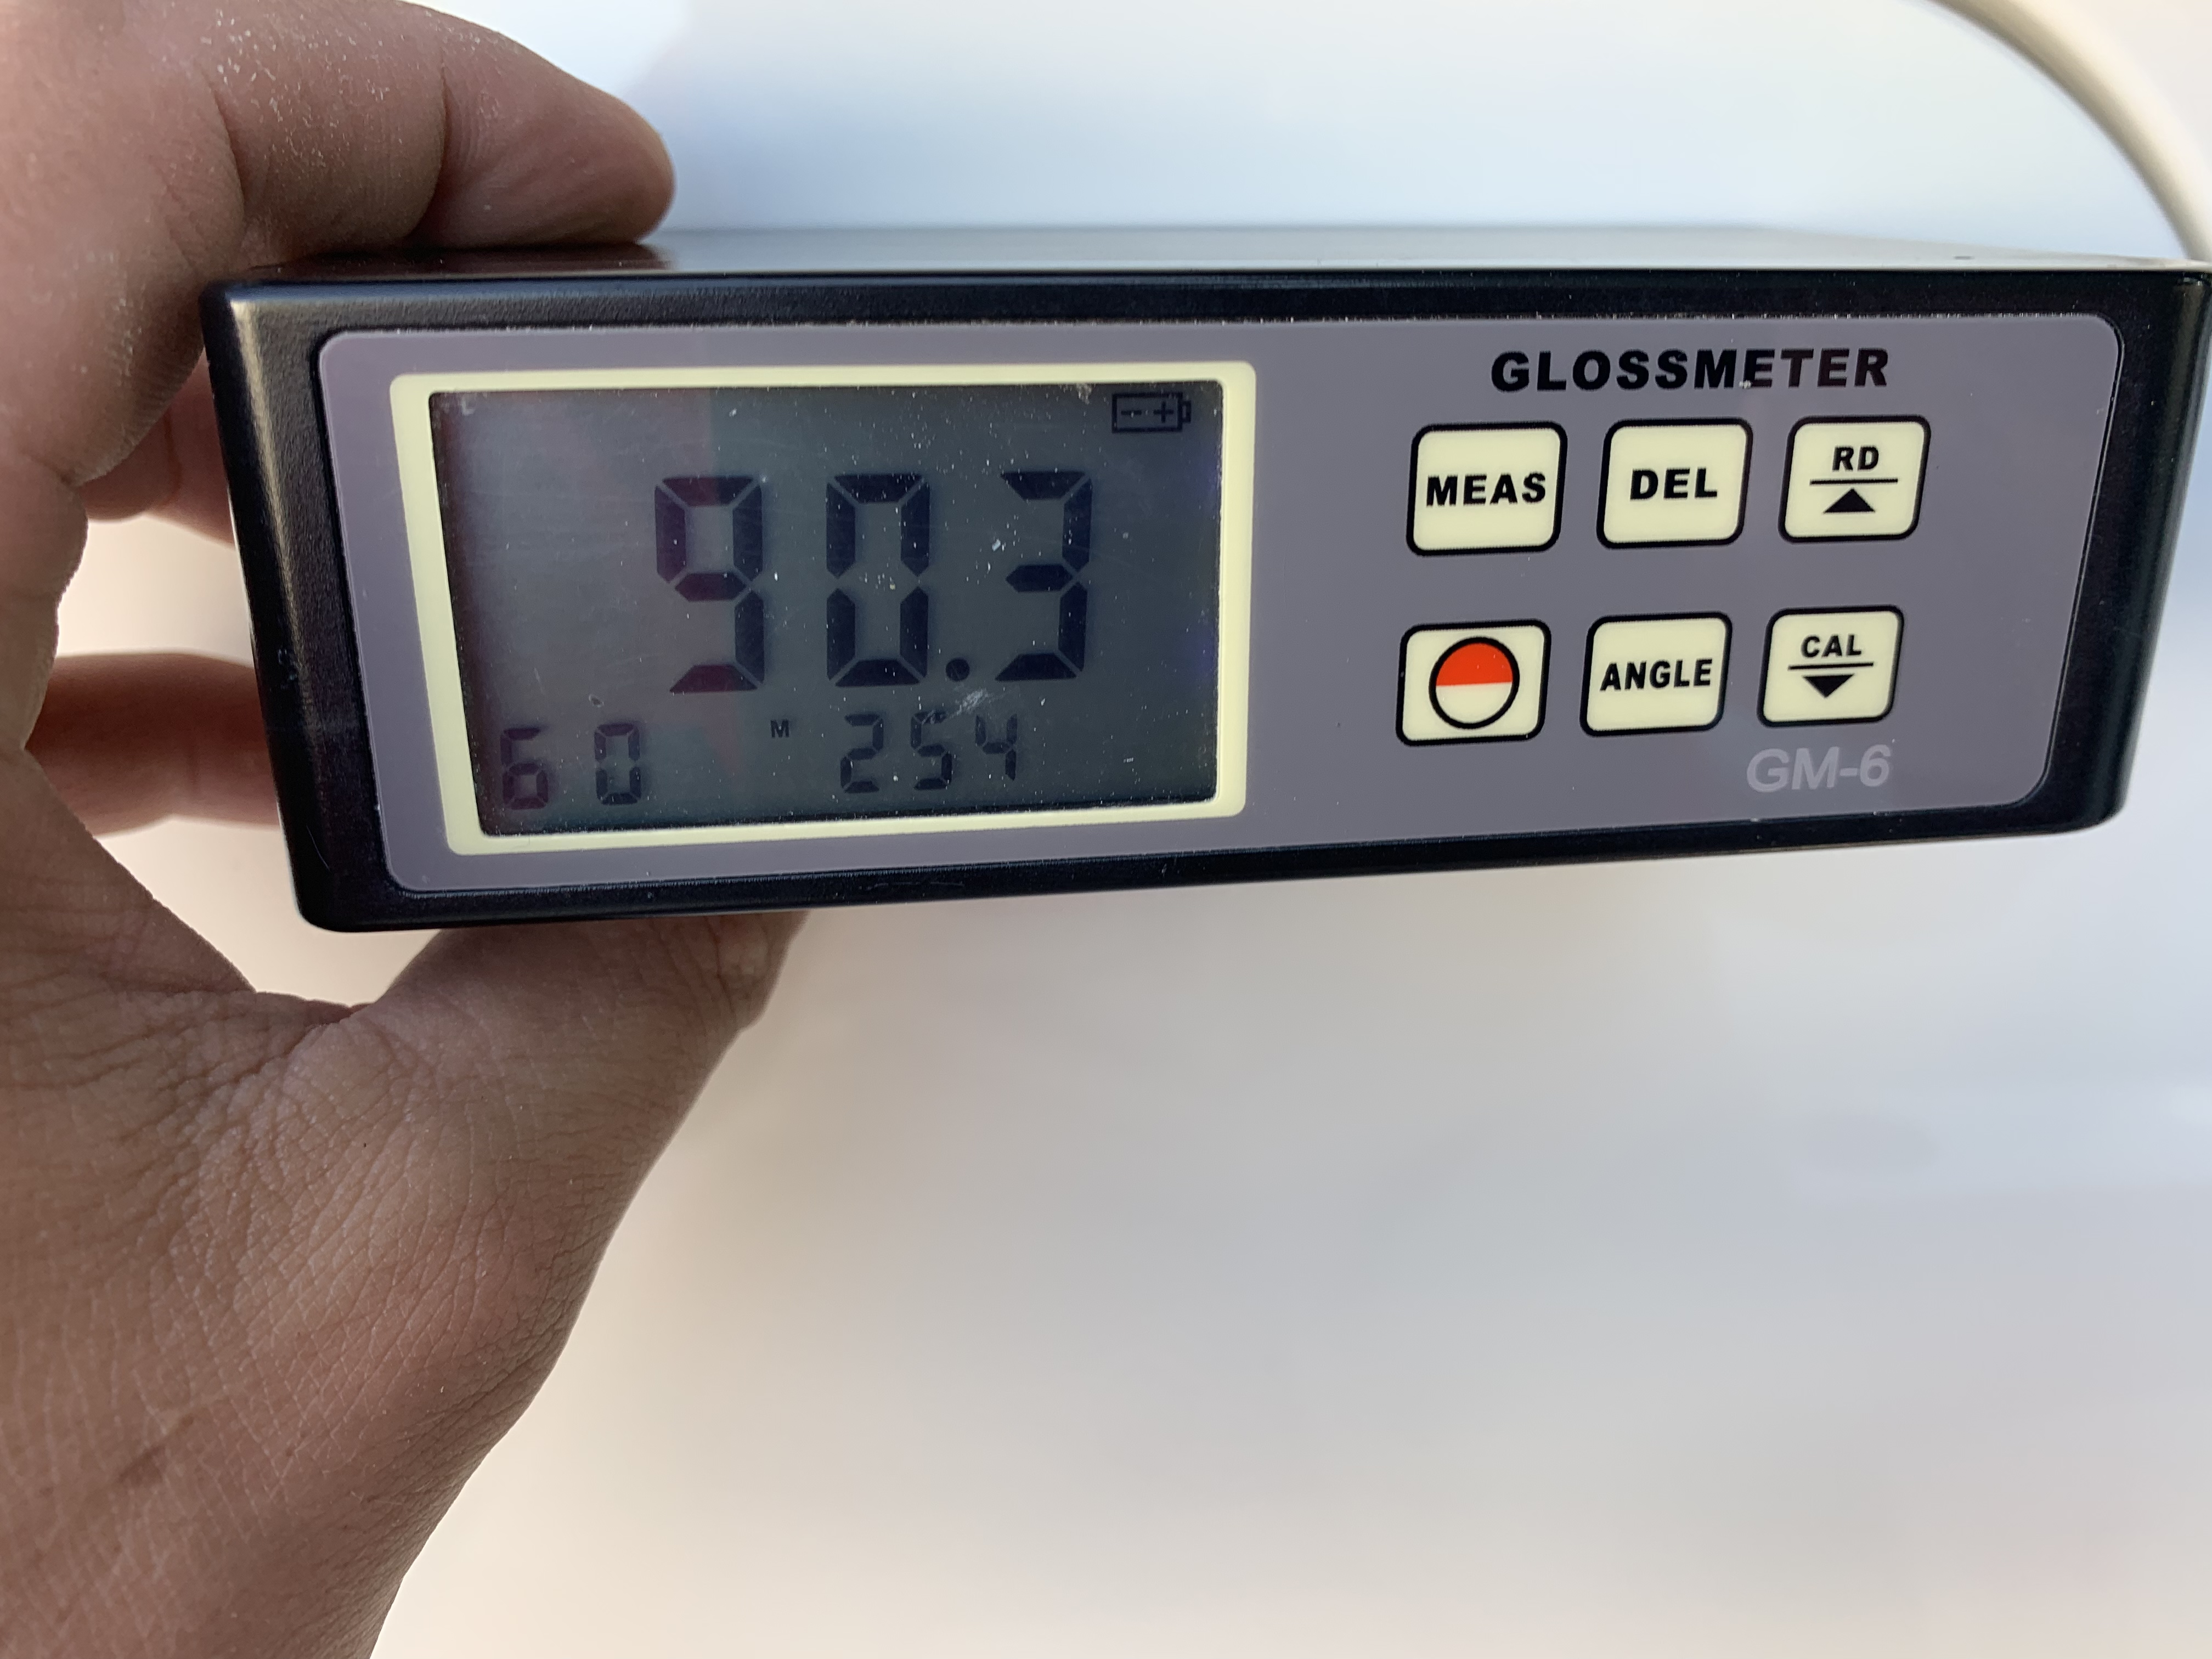 90.3 gloss meter reading after ceramic boat coating